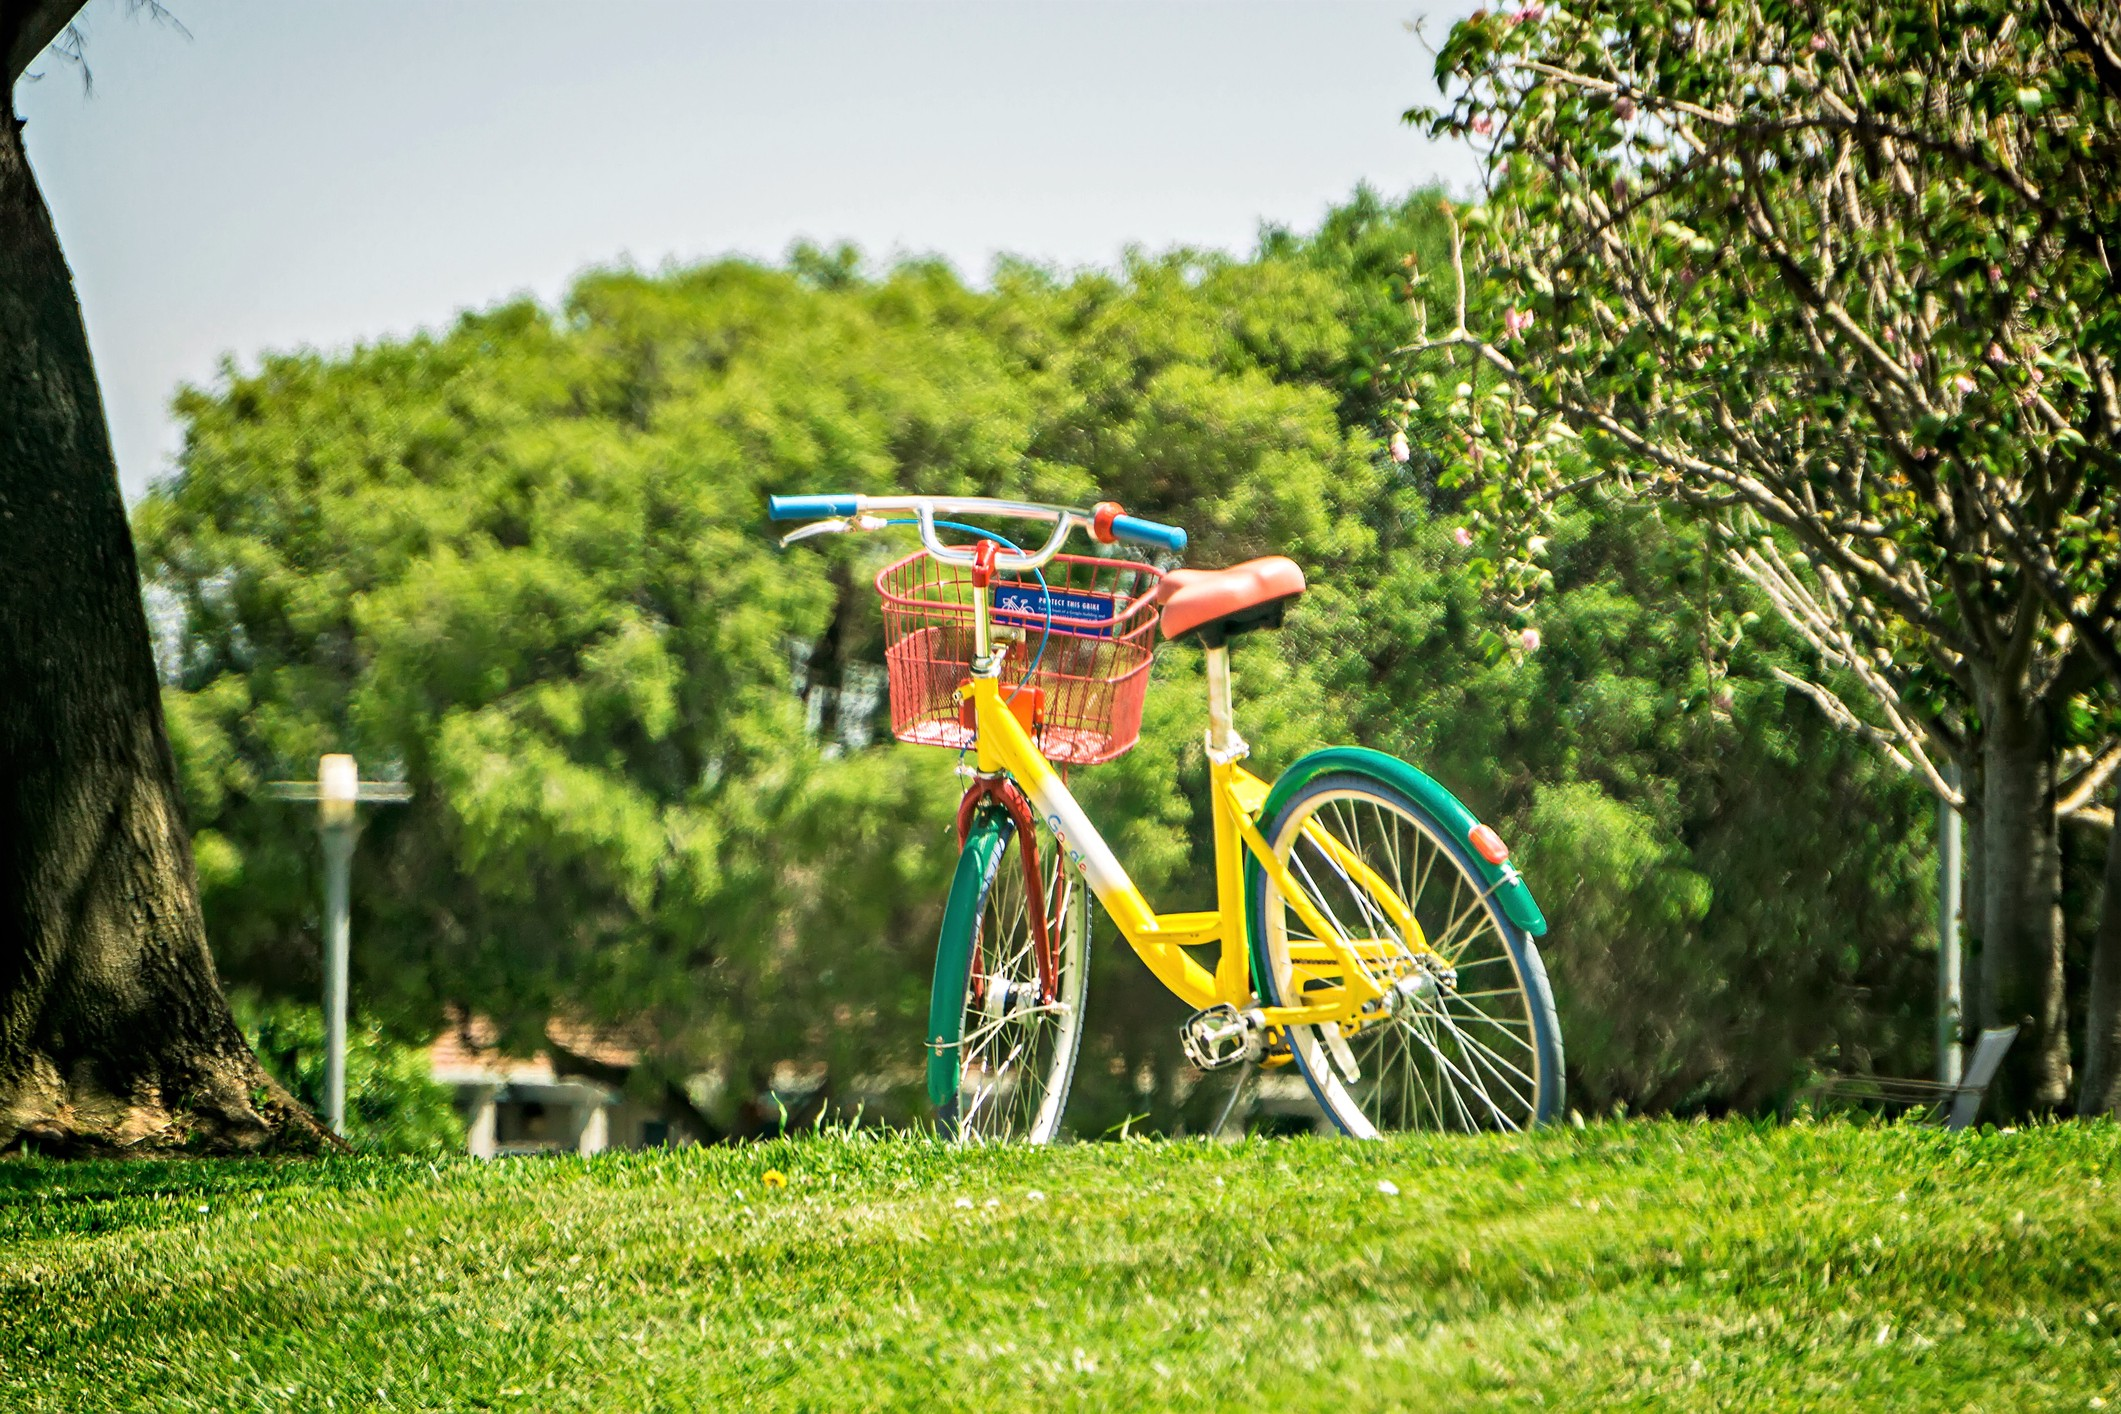 A photo of a Google bike parked on a grassy lawn.